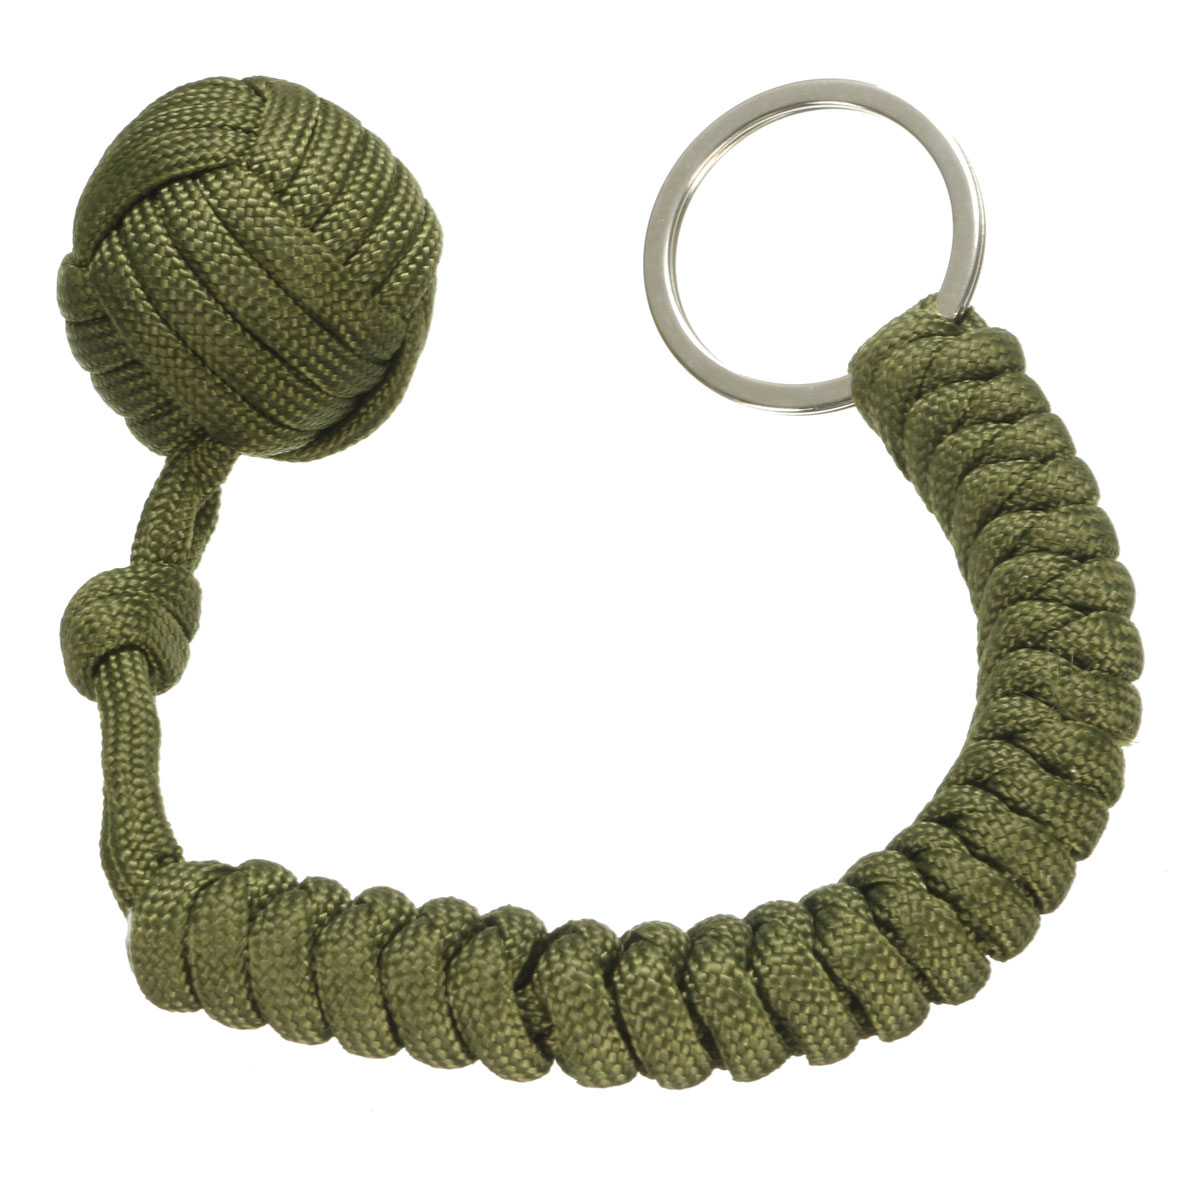 1pcs heavy Steel Ball inside Monkey Fist Security protection for self defense Knife Lanyard Monkey Fist Survival Key Chain tool ...